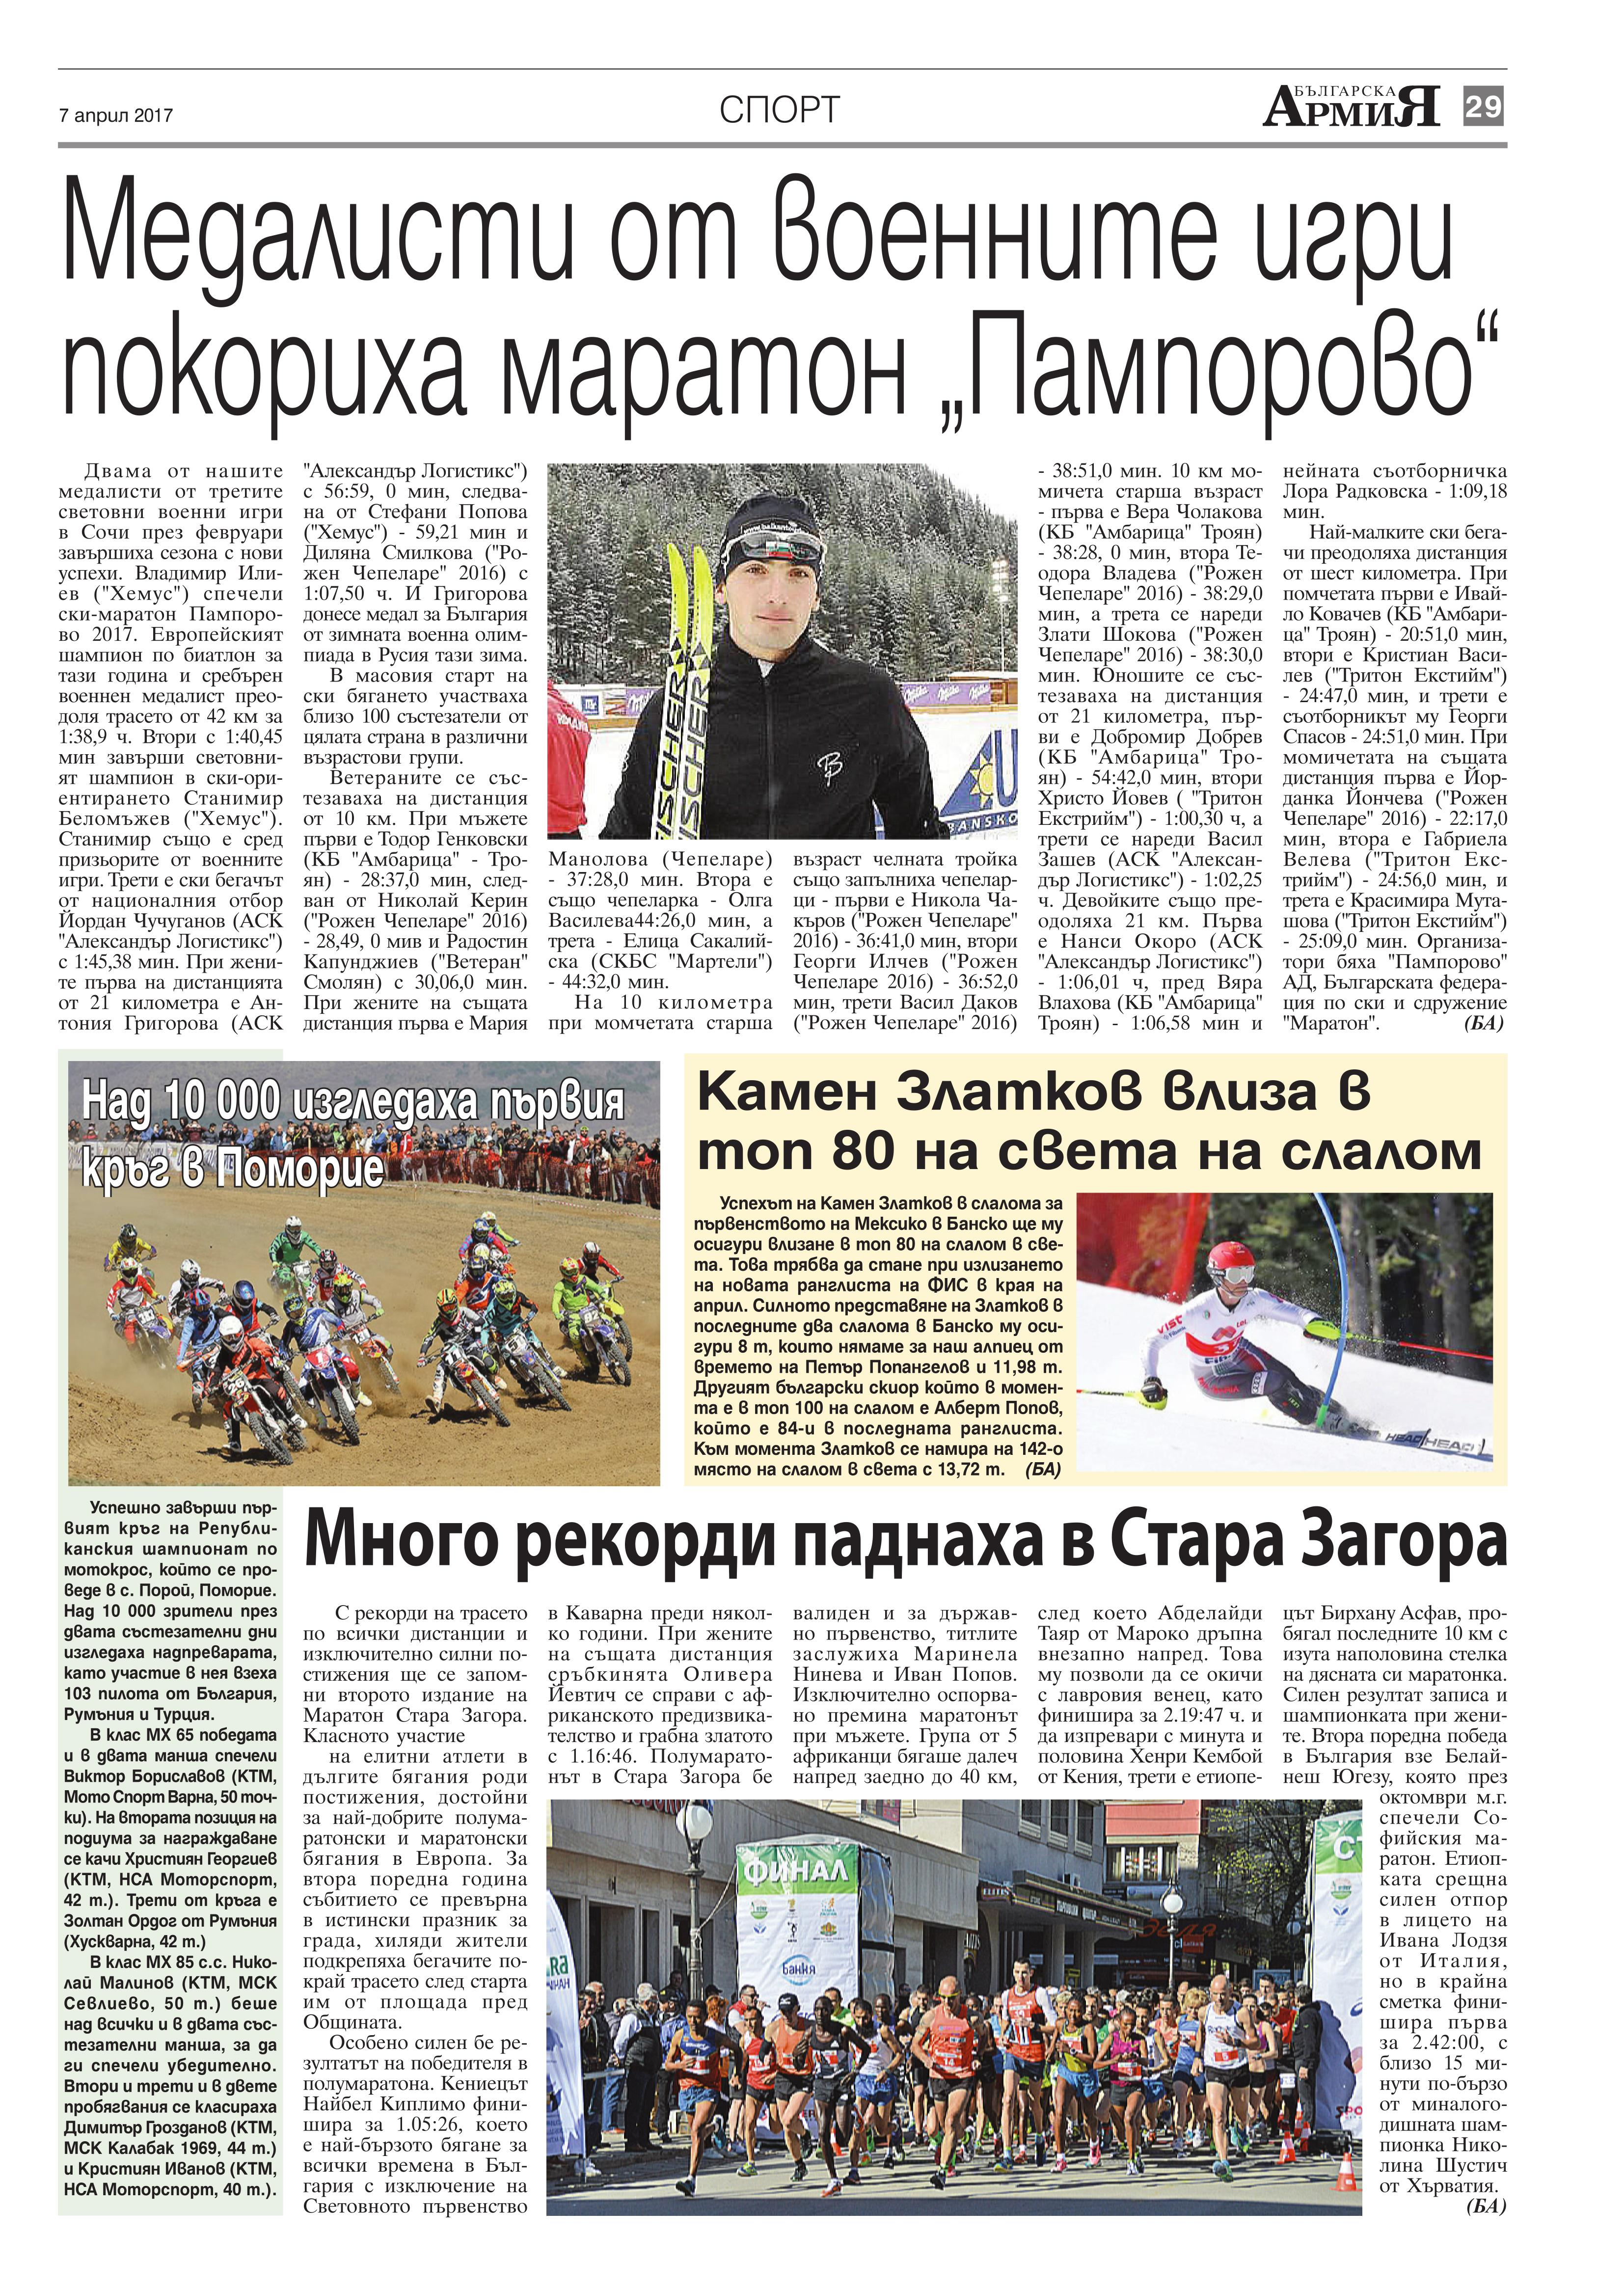 https://www.armymedia.bg/wp-content/uploads/2015/06/29.page1_-17.jpg